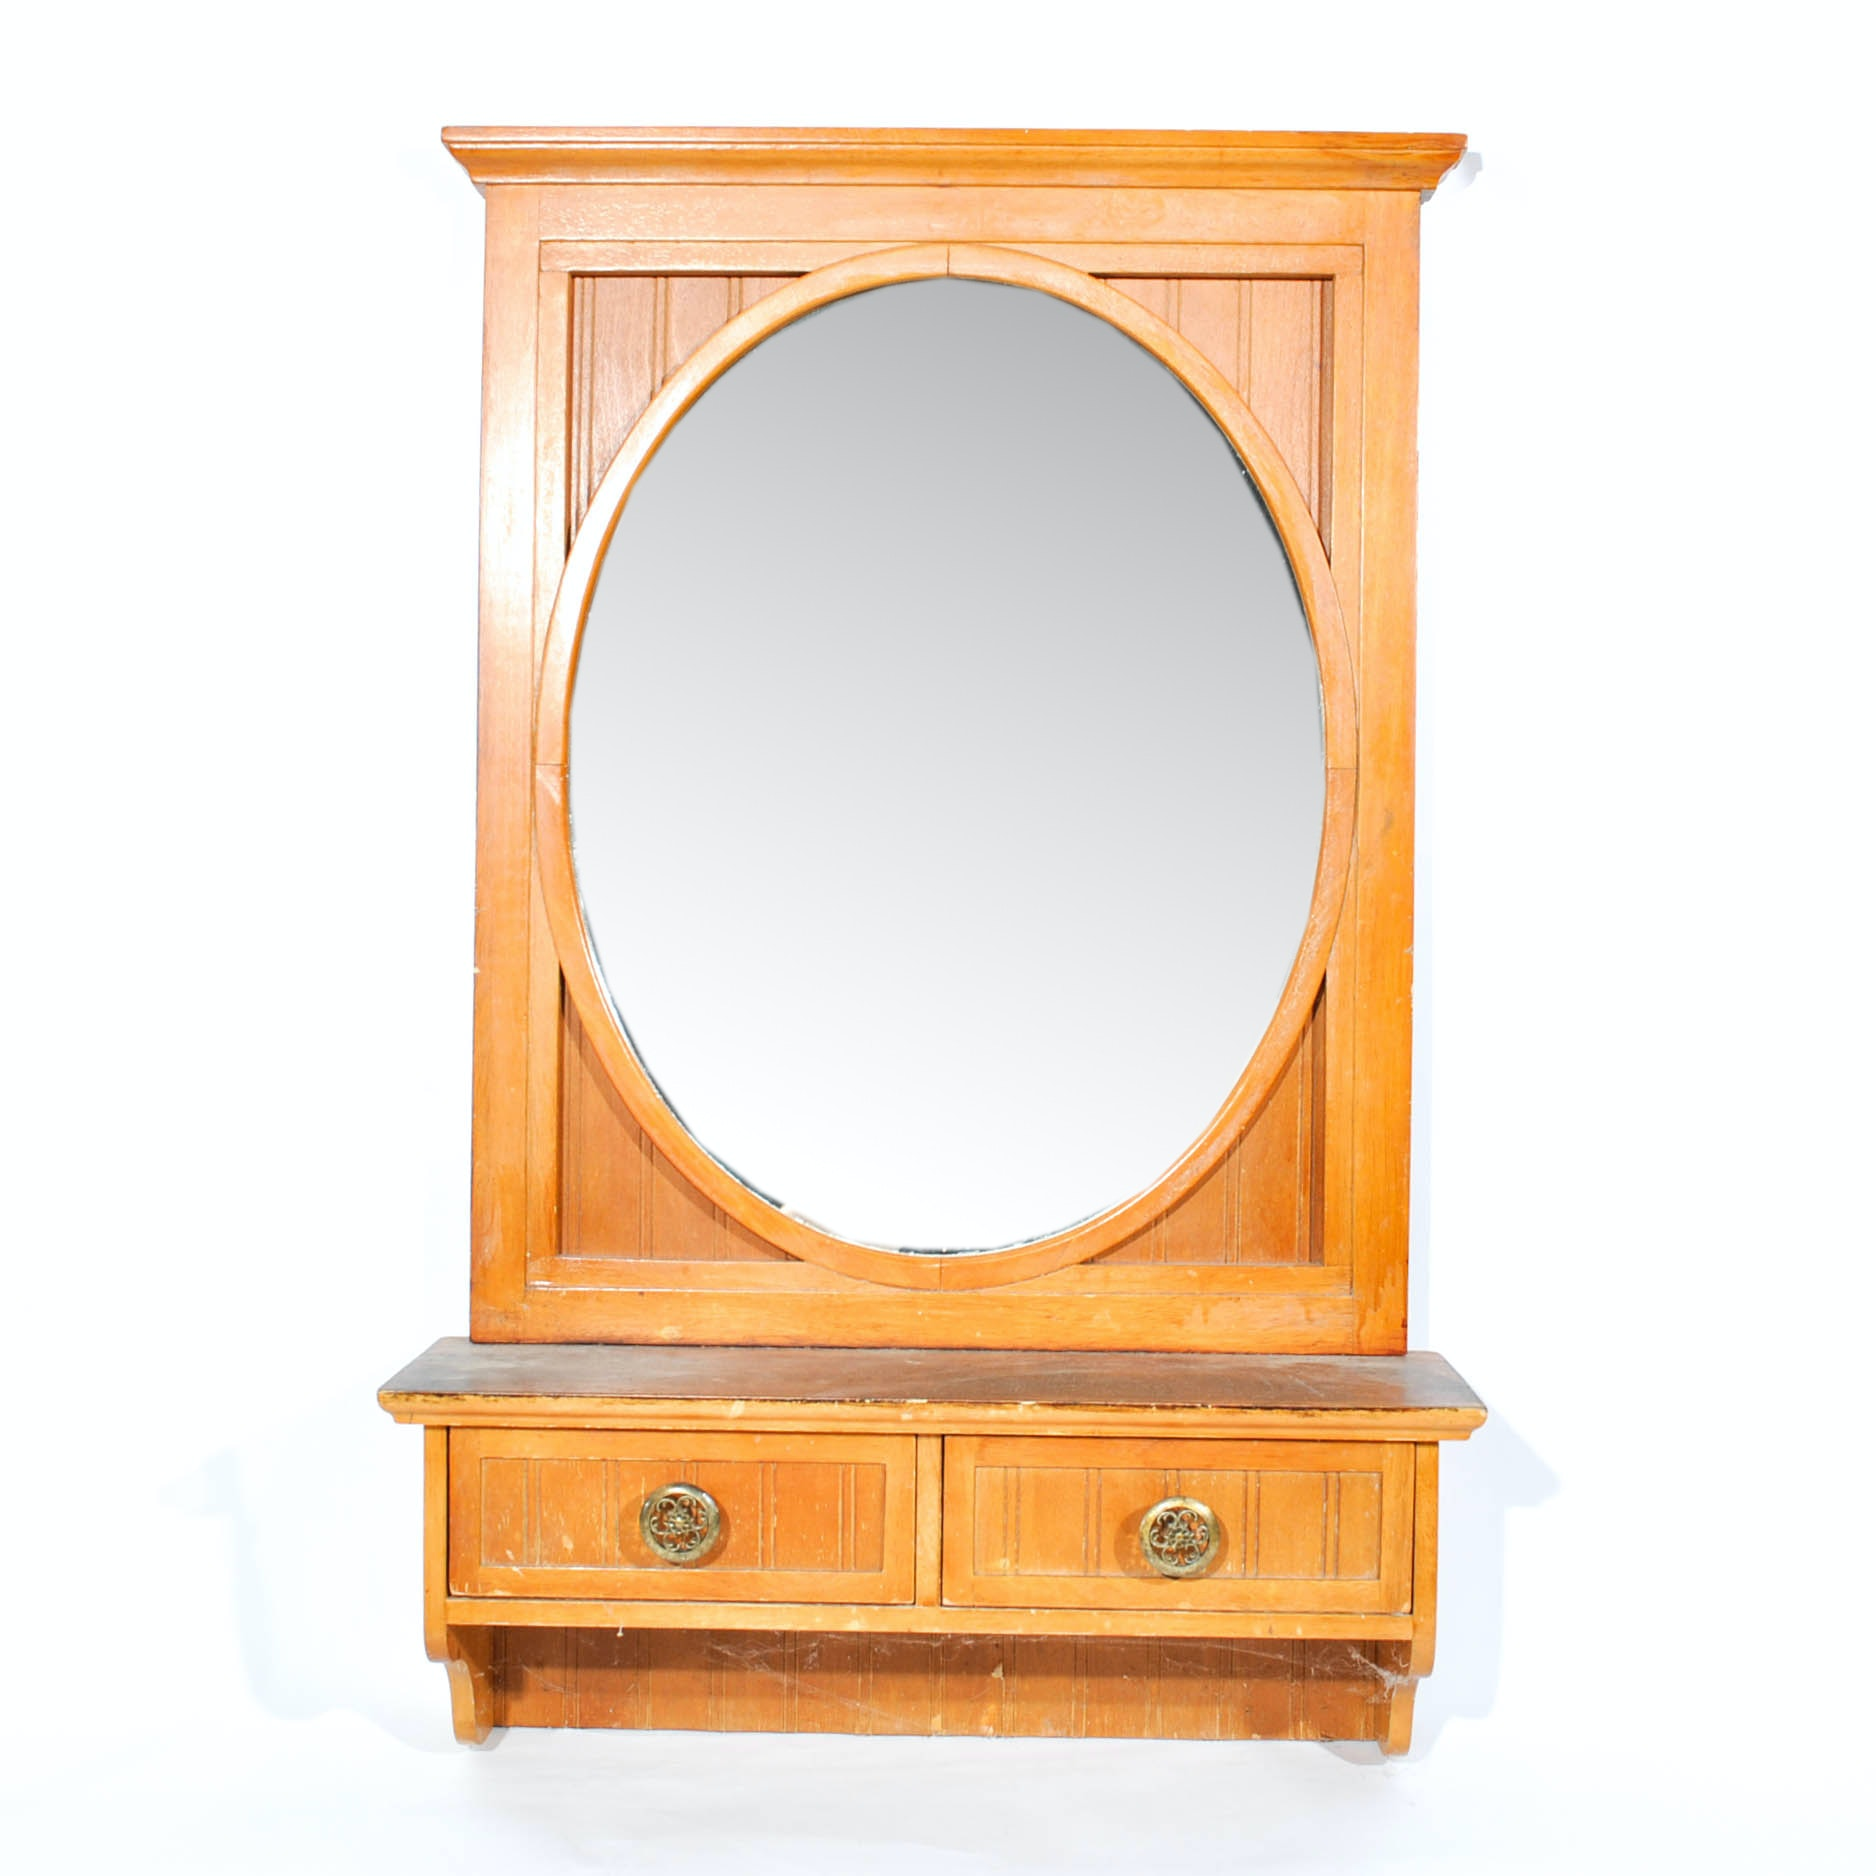 French Country Style Wainscot Hall Mirror with Drawers